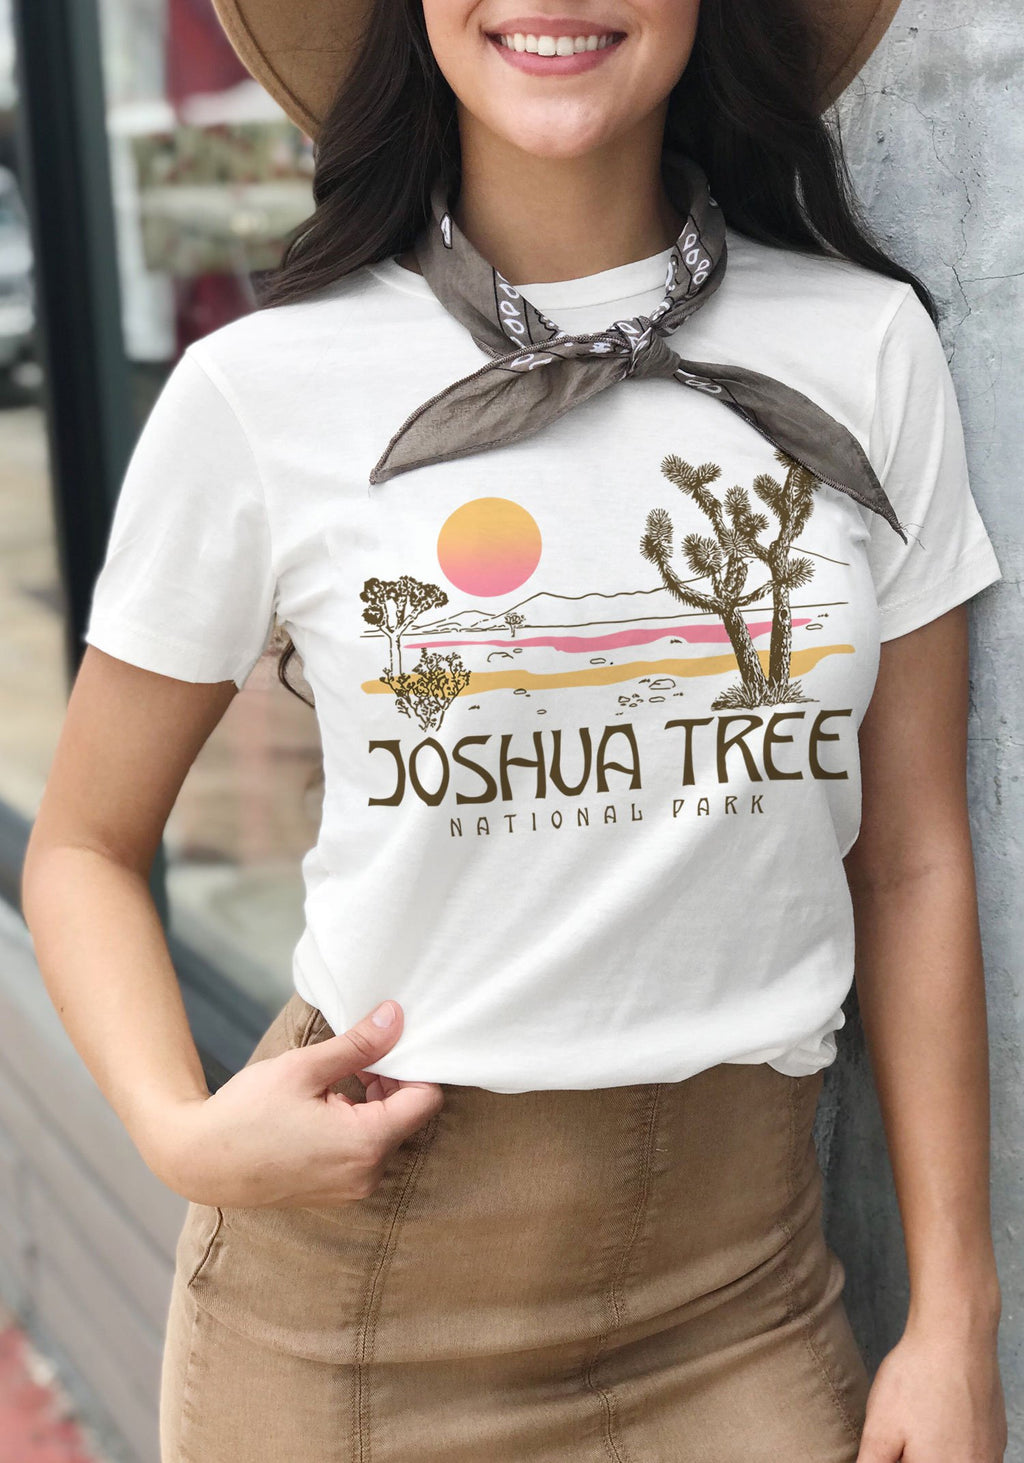 Joshua Tree Tee / womens graphic tees / California vintage style souvenir t shirt / national park / southwest desert travel shirt